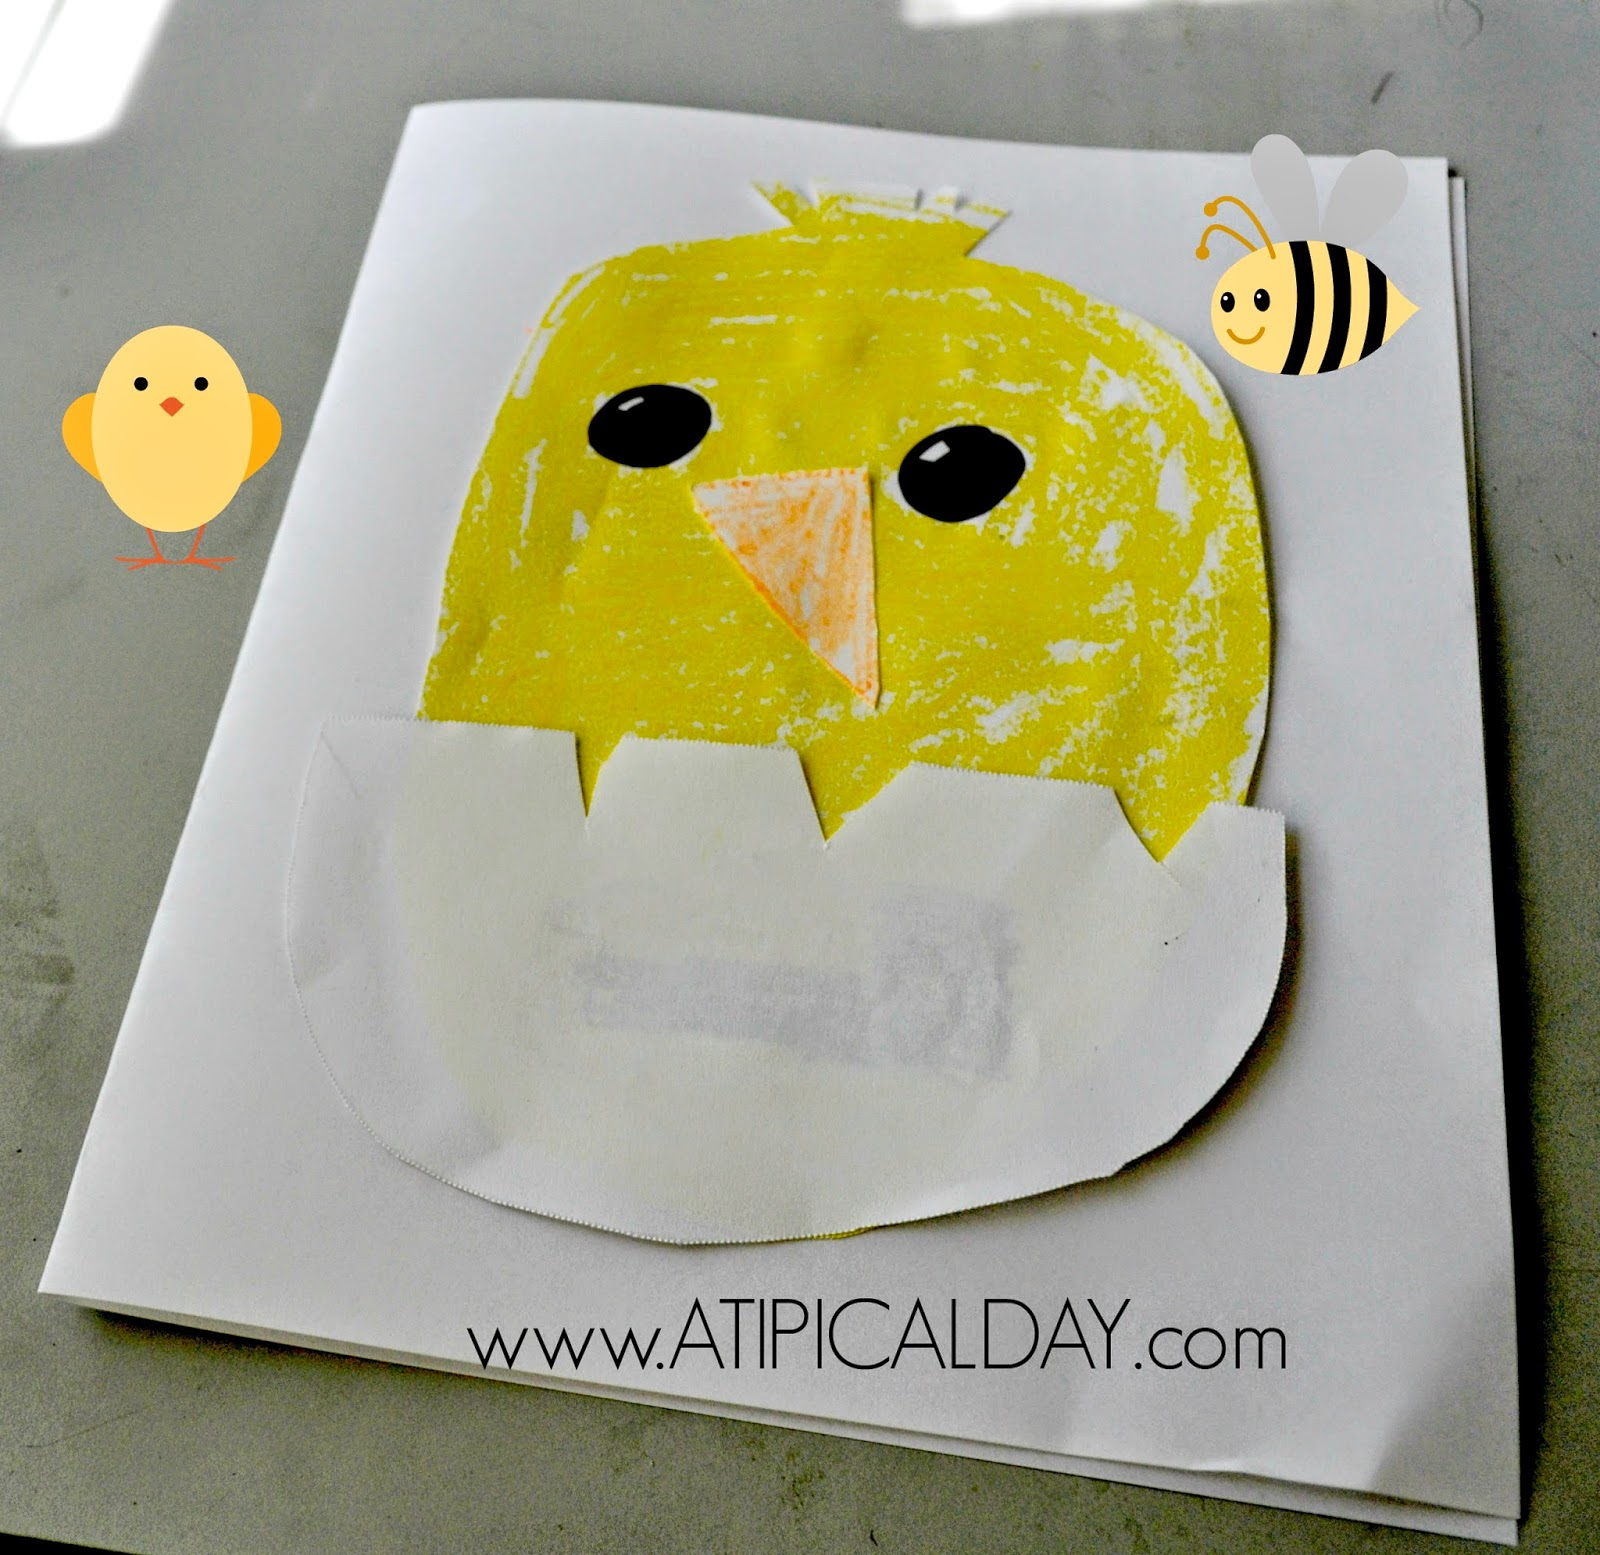 picture of a card made by a child with a baby chick hatching from an egg